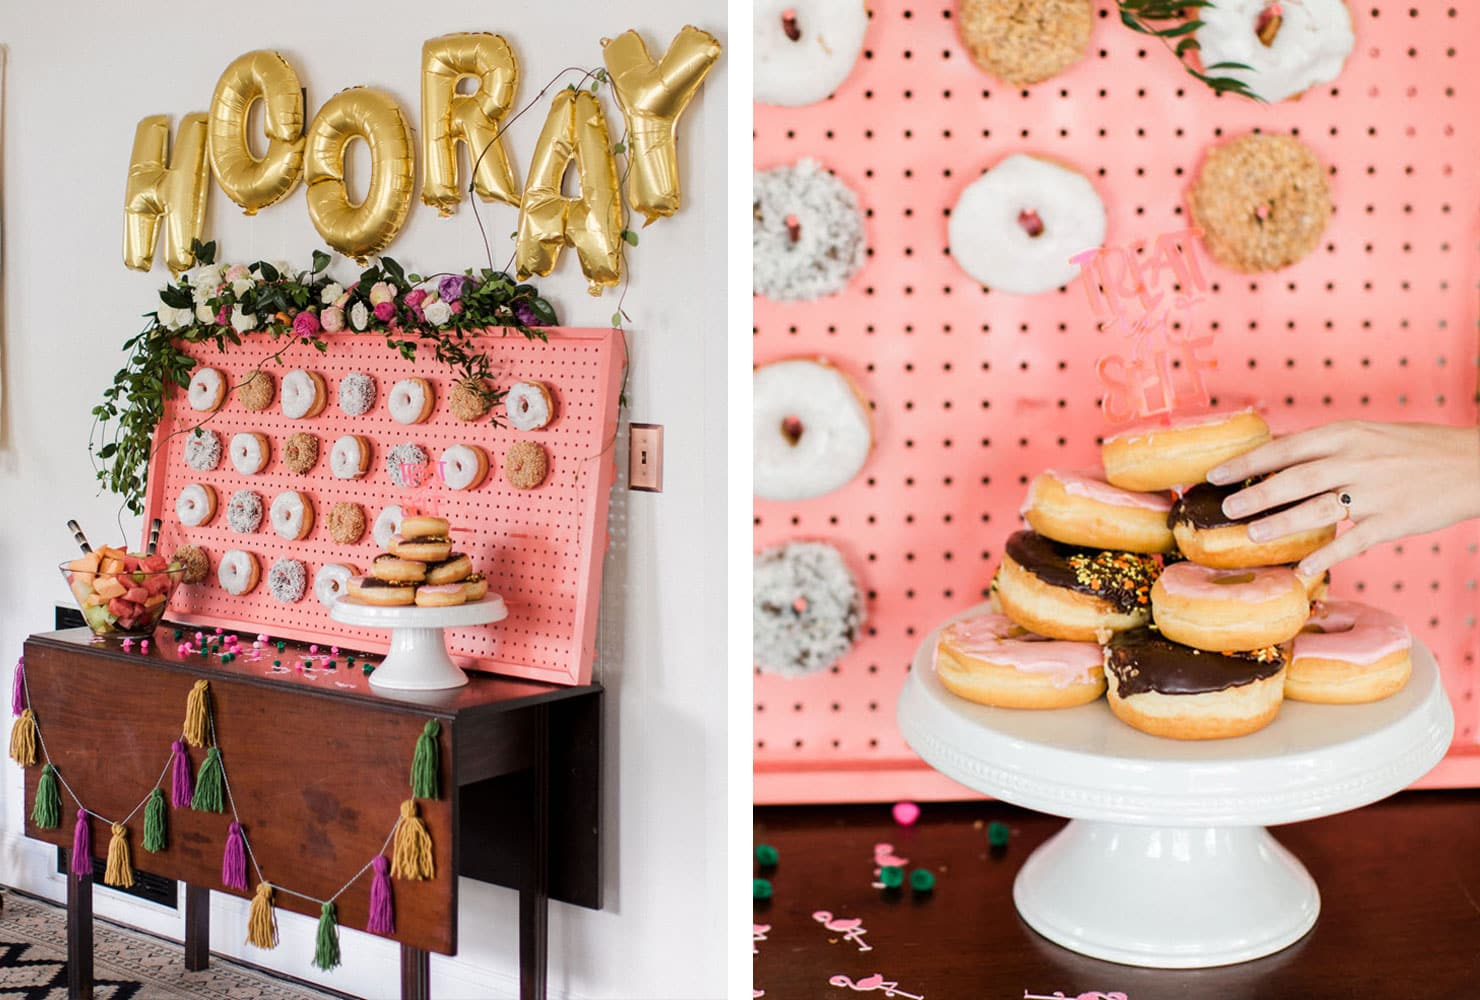 Pink peg wall with donuts, fresh fruit and gold letter balloons